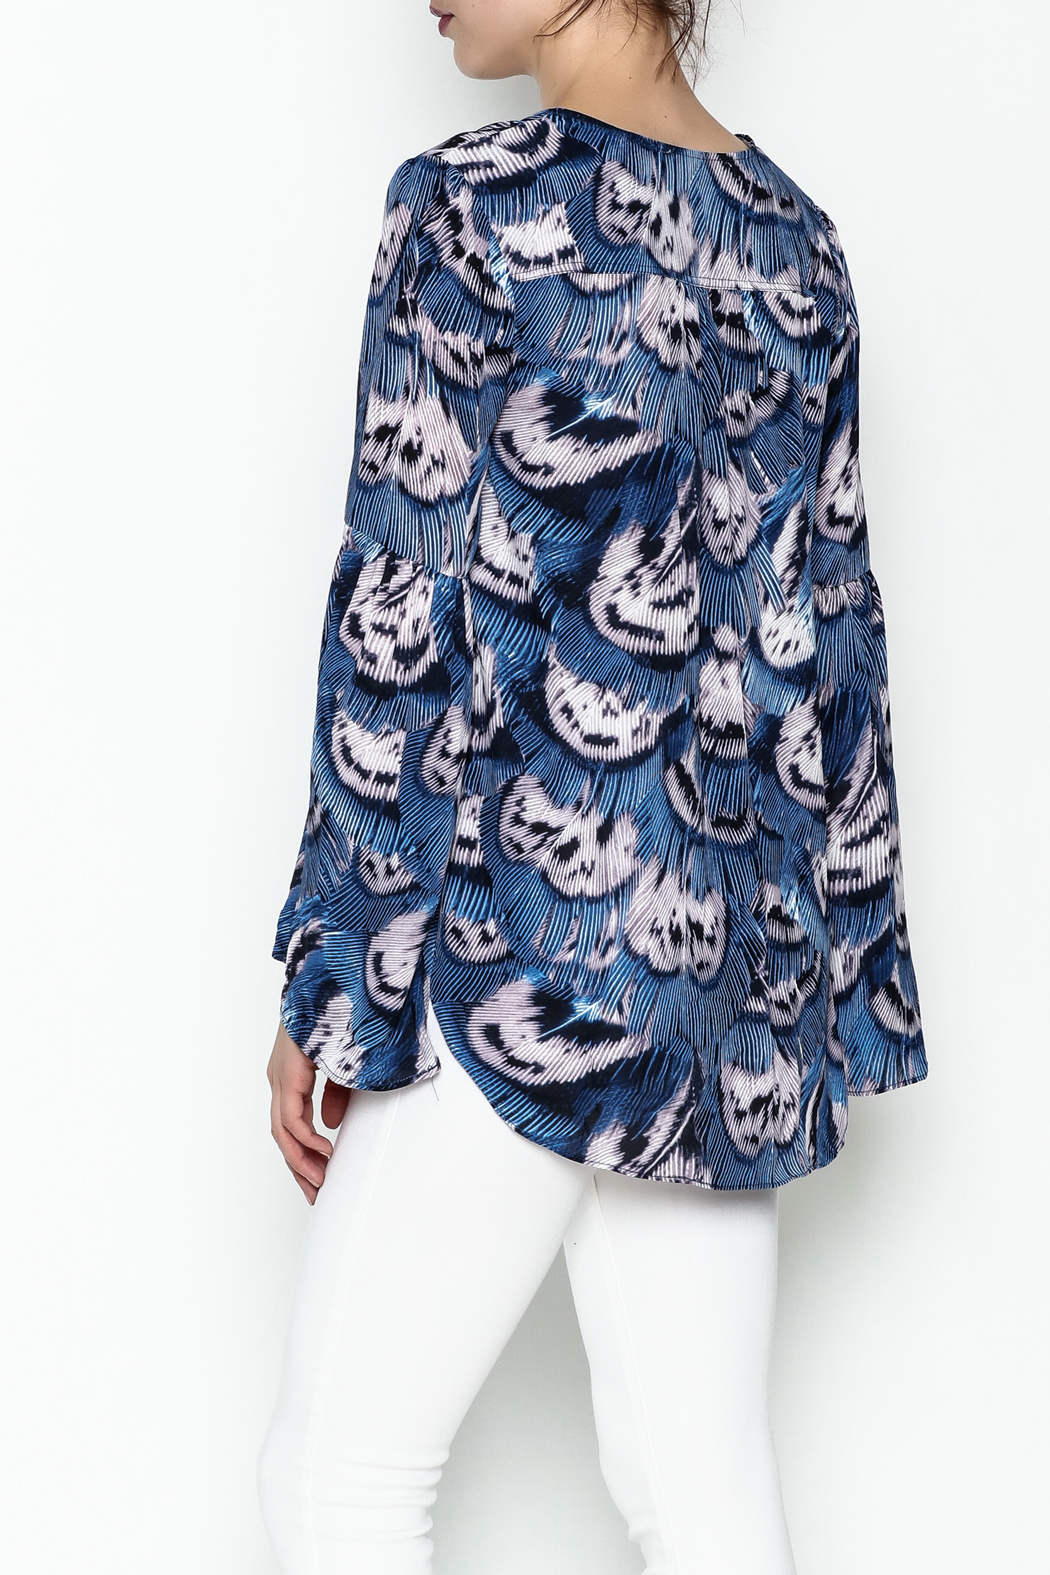 Buddy Love Peacock Printed Blouse - Back Cropped Image